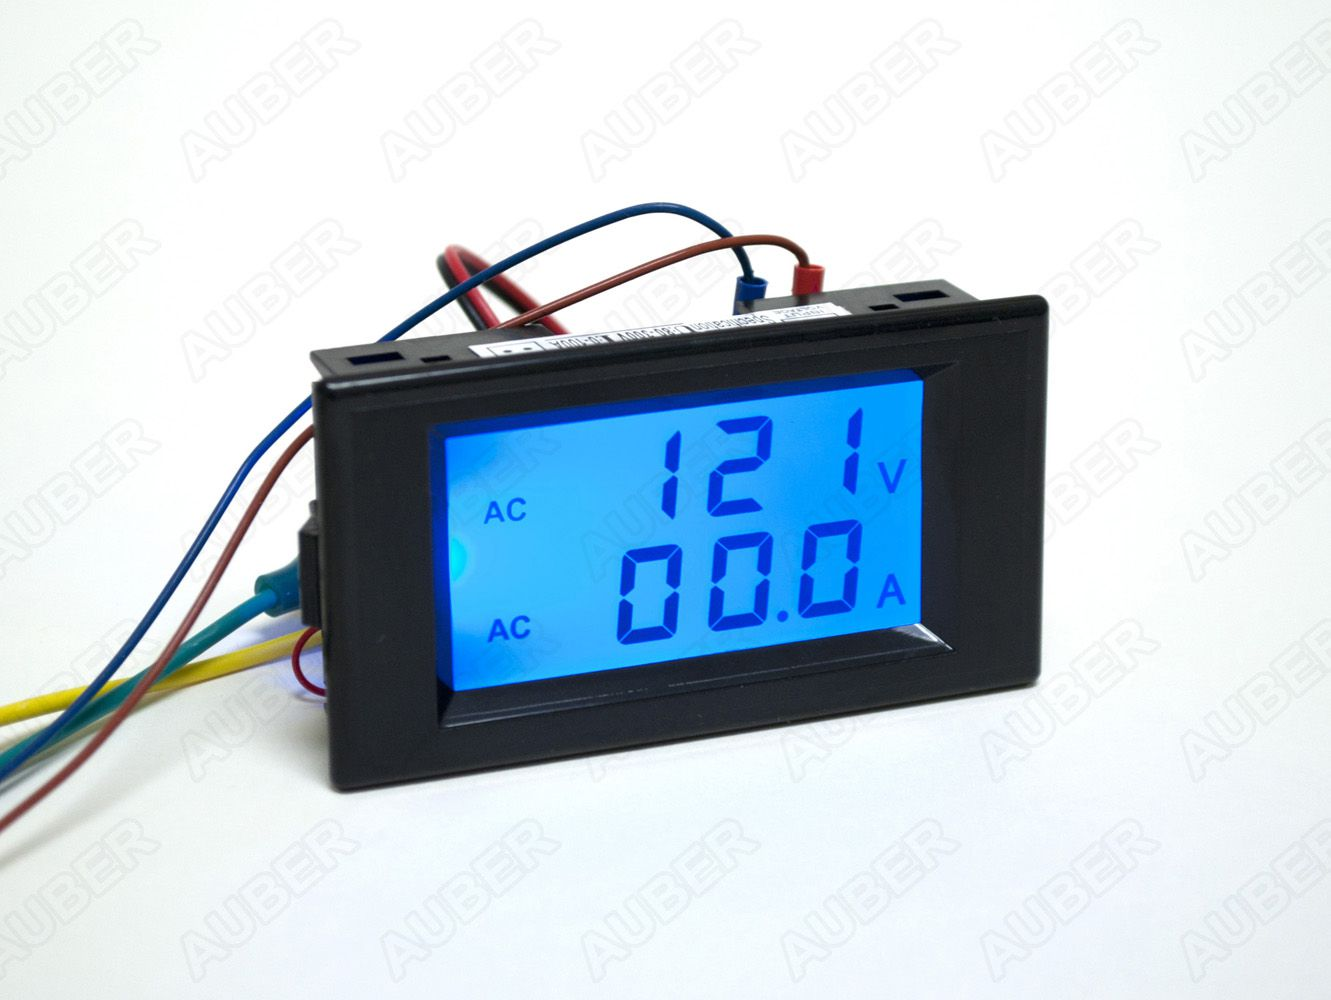 2 In 1 Lcd Voltmeter Ammeter Gauge Dva 120 1750 Selector Switch Connection To Current Transformers And